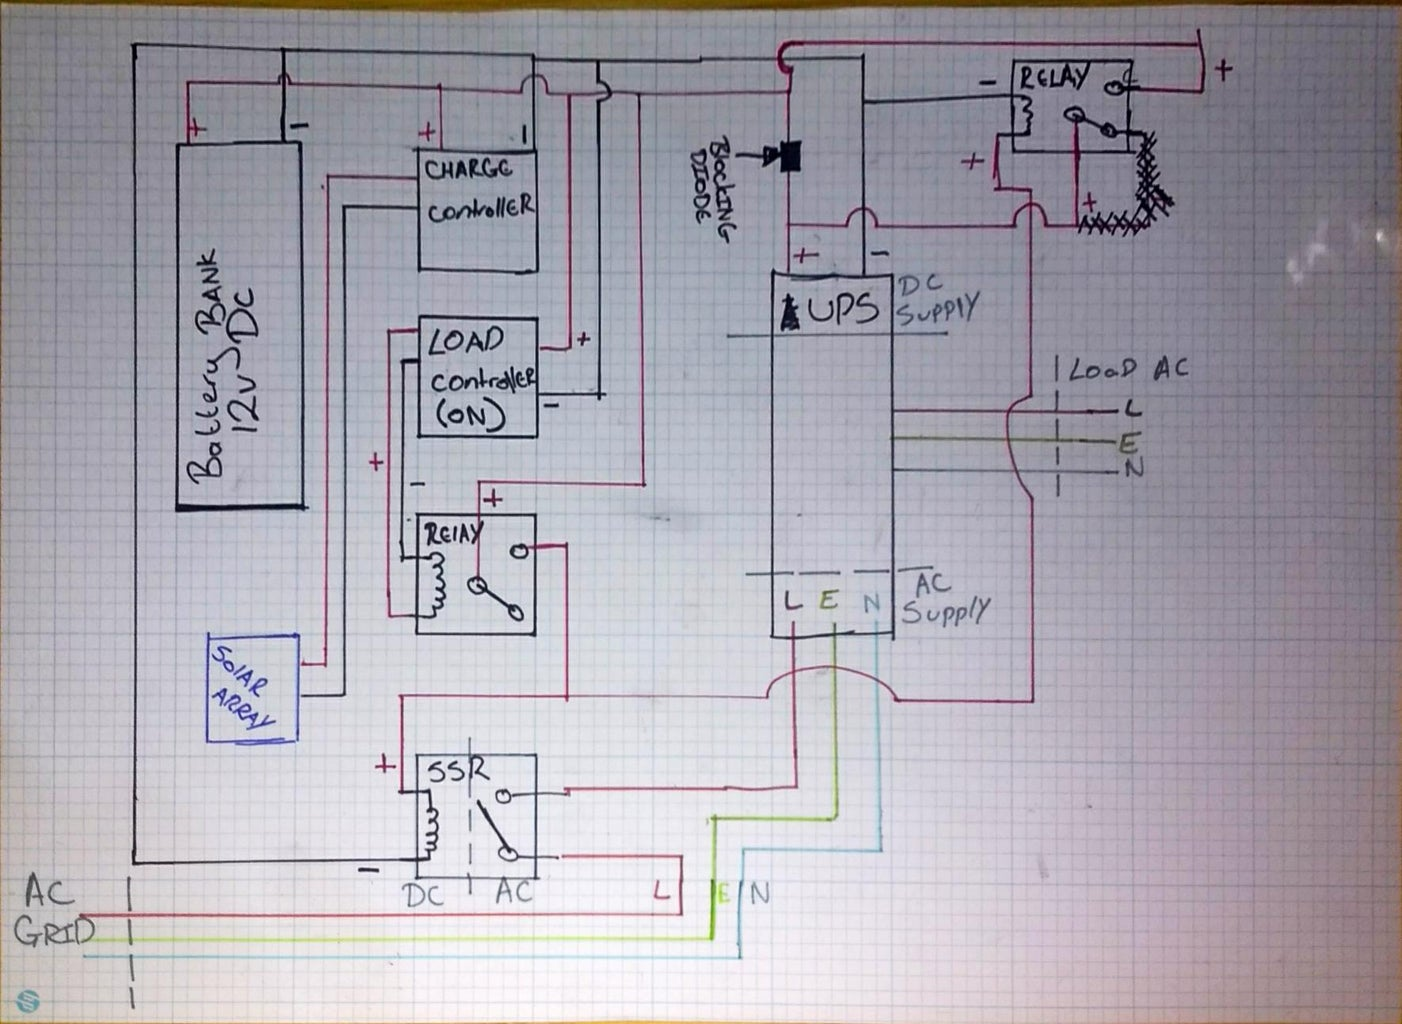 Creating a Switching System That Controls the Ups